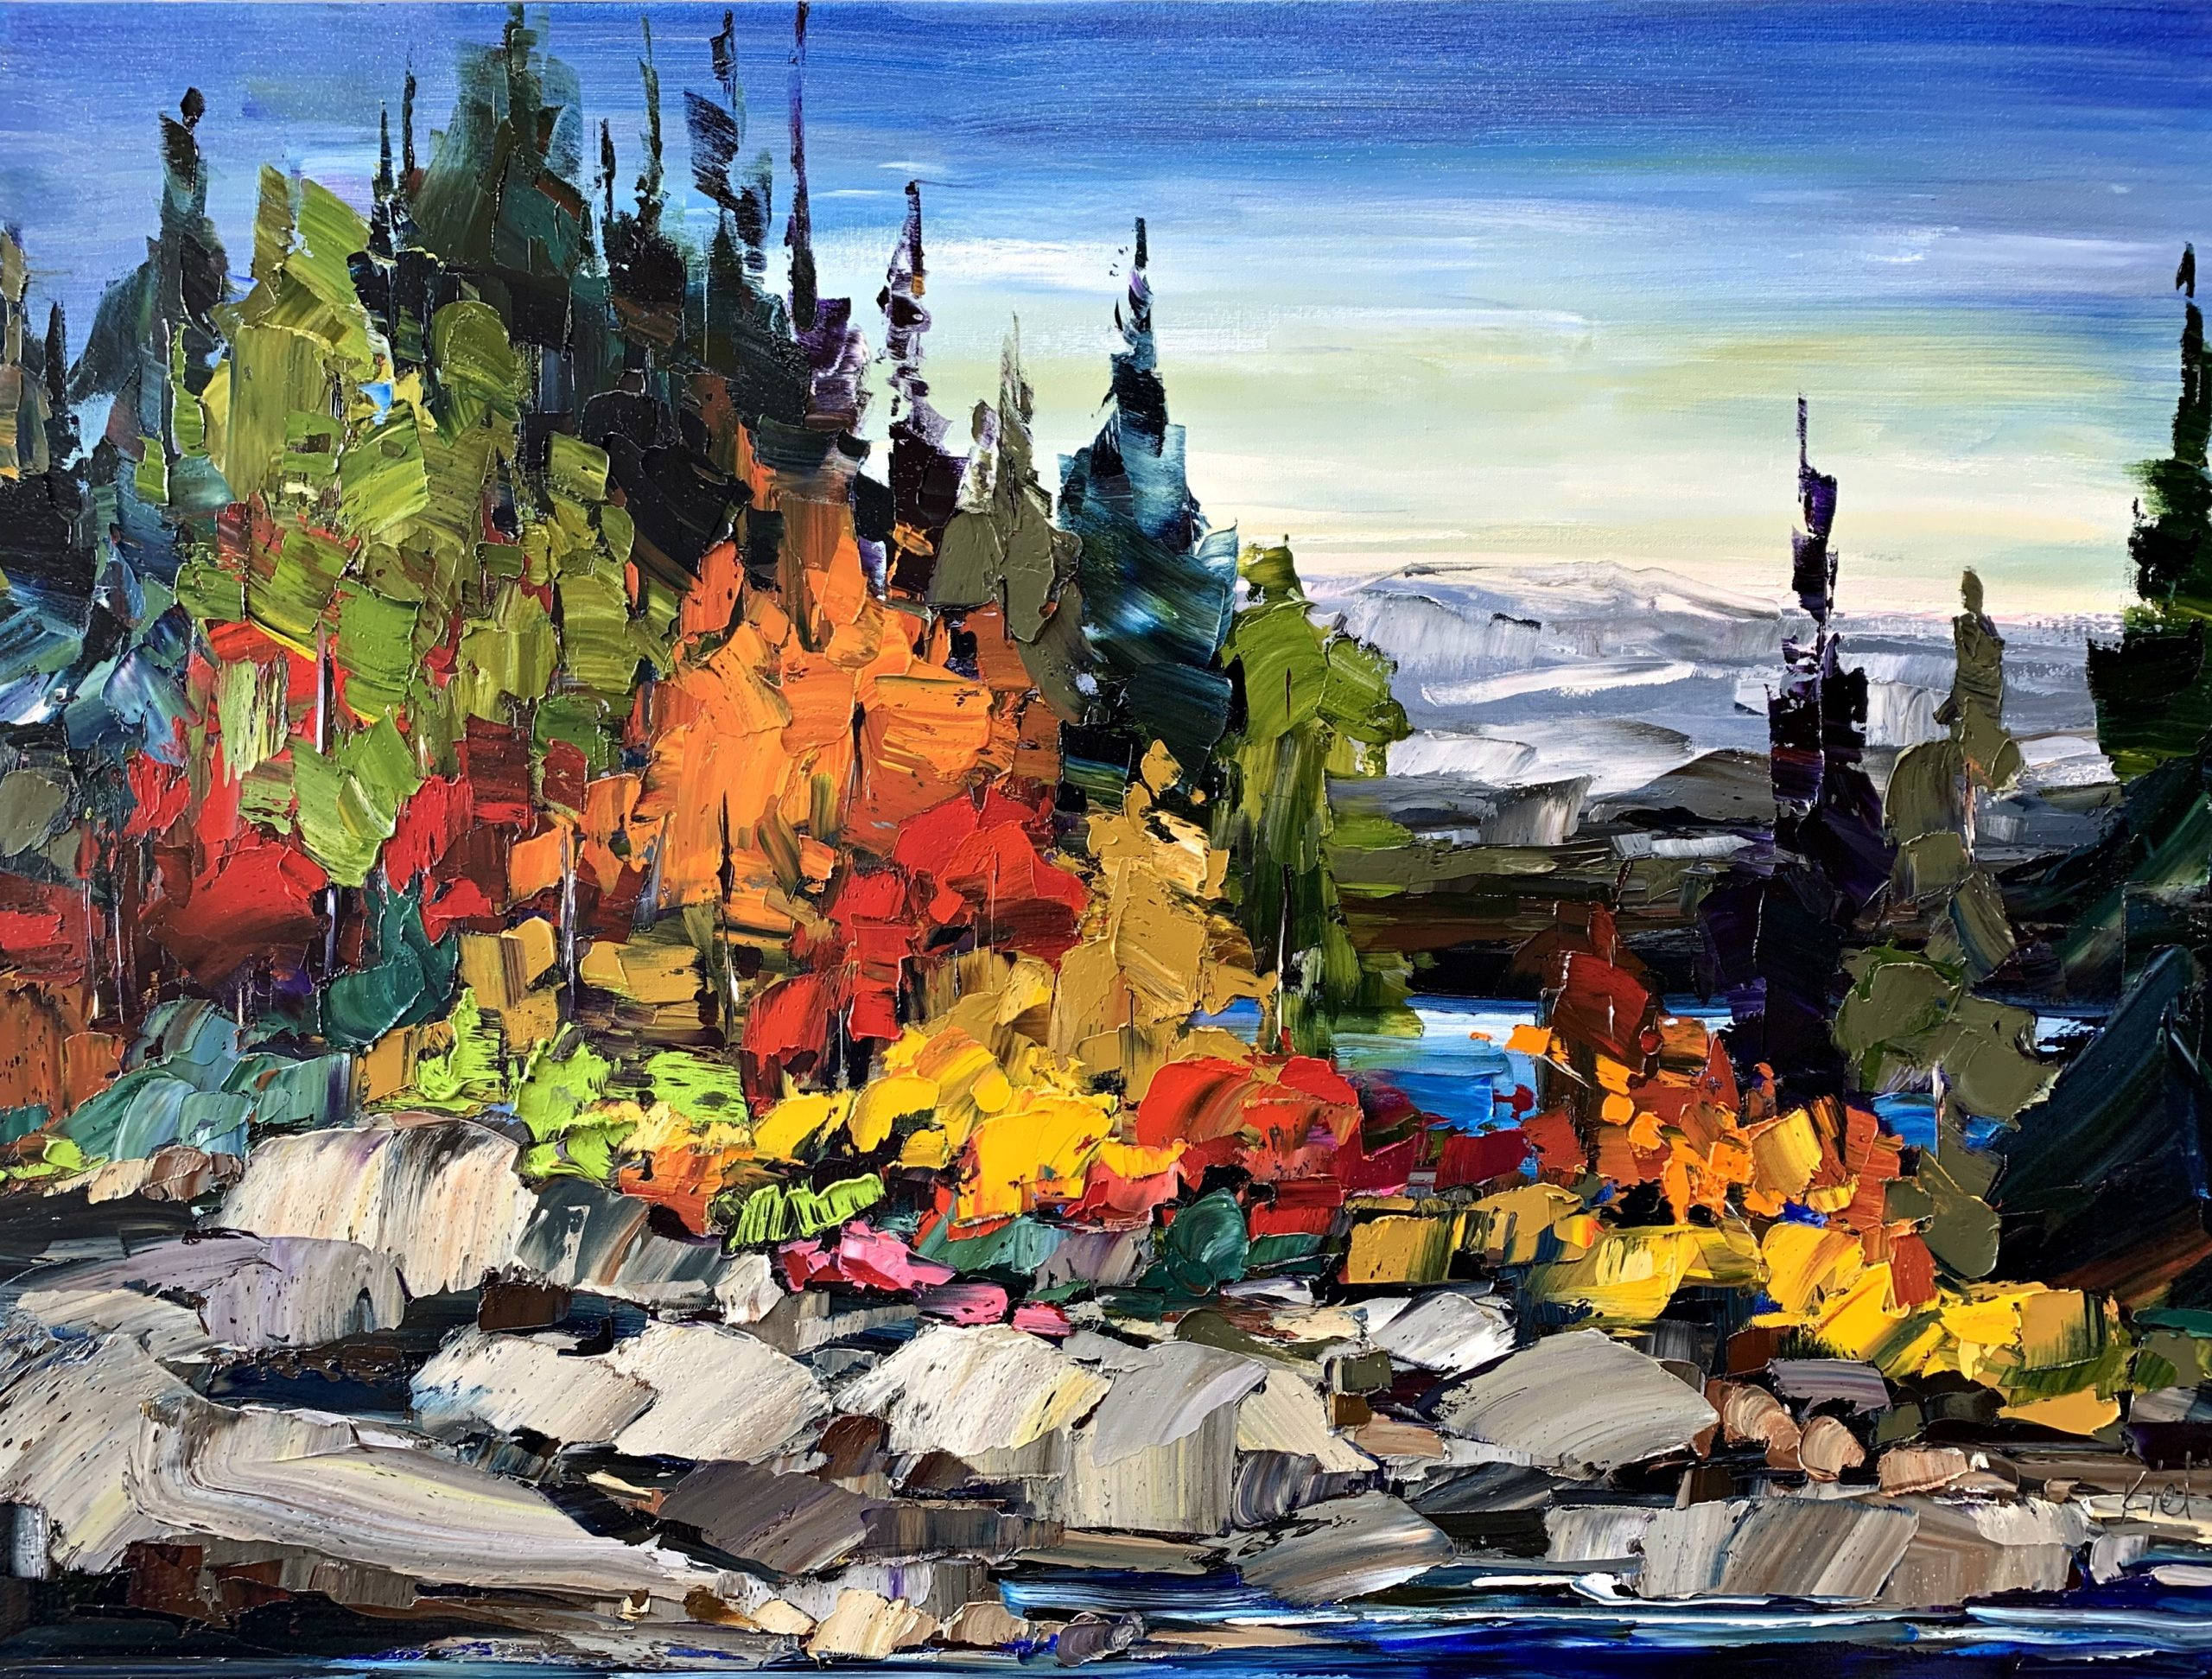 A Gallery of Talismans, landscape oil painting by Kimberly Kiel | Effusion Art Gallery + Cast Glass Studio, Invermere BC